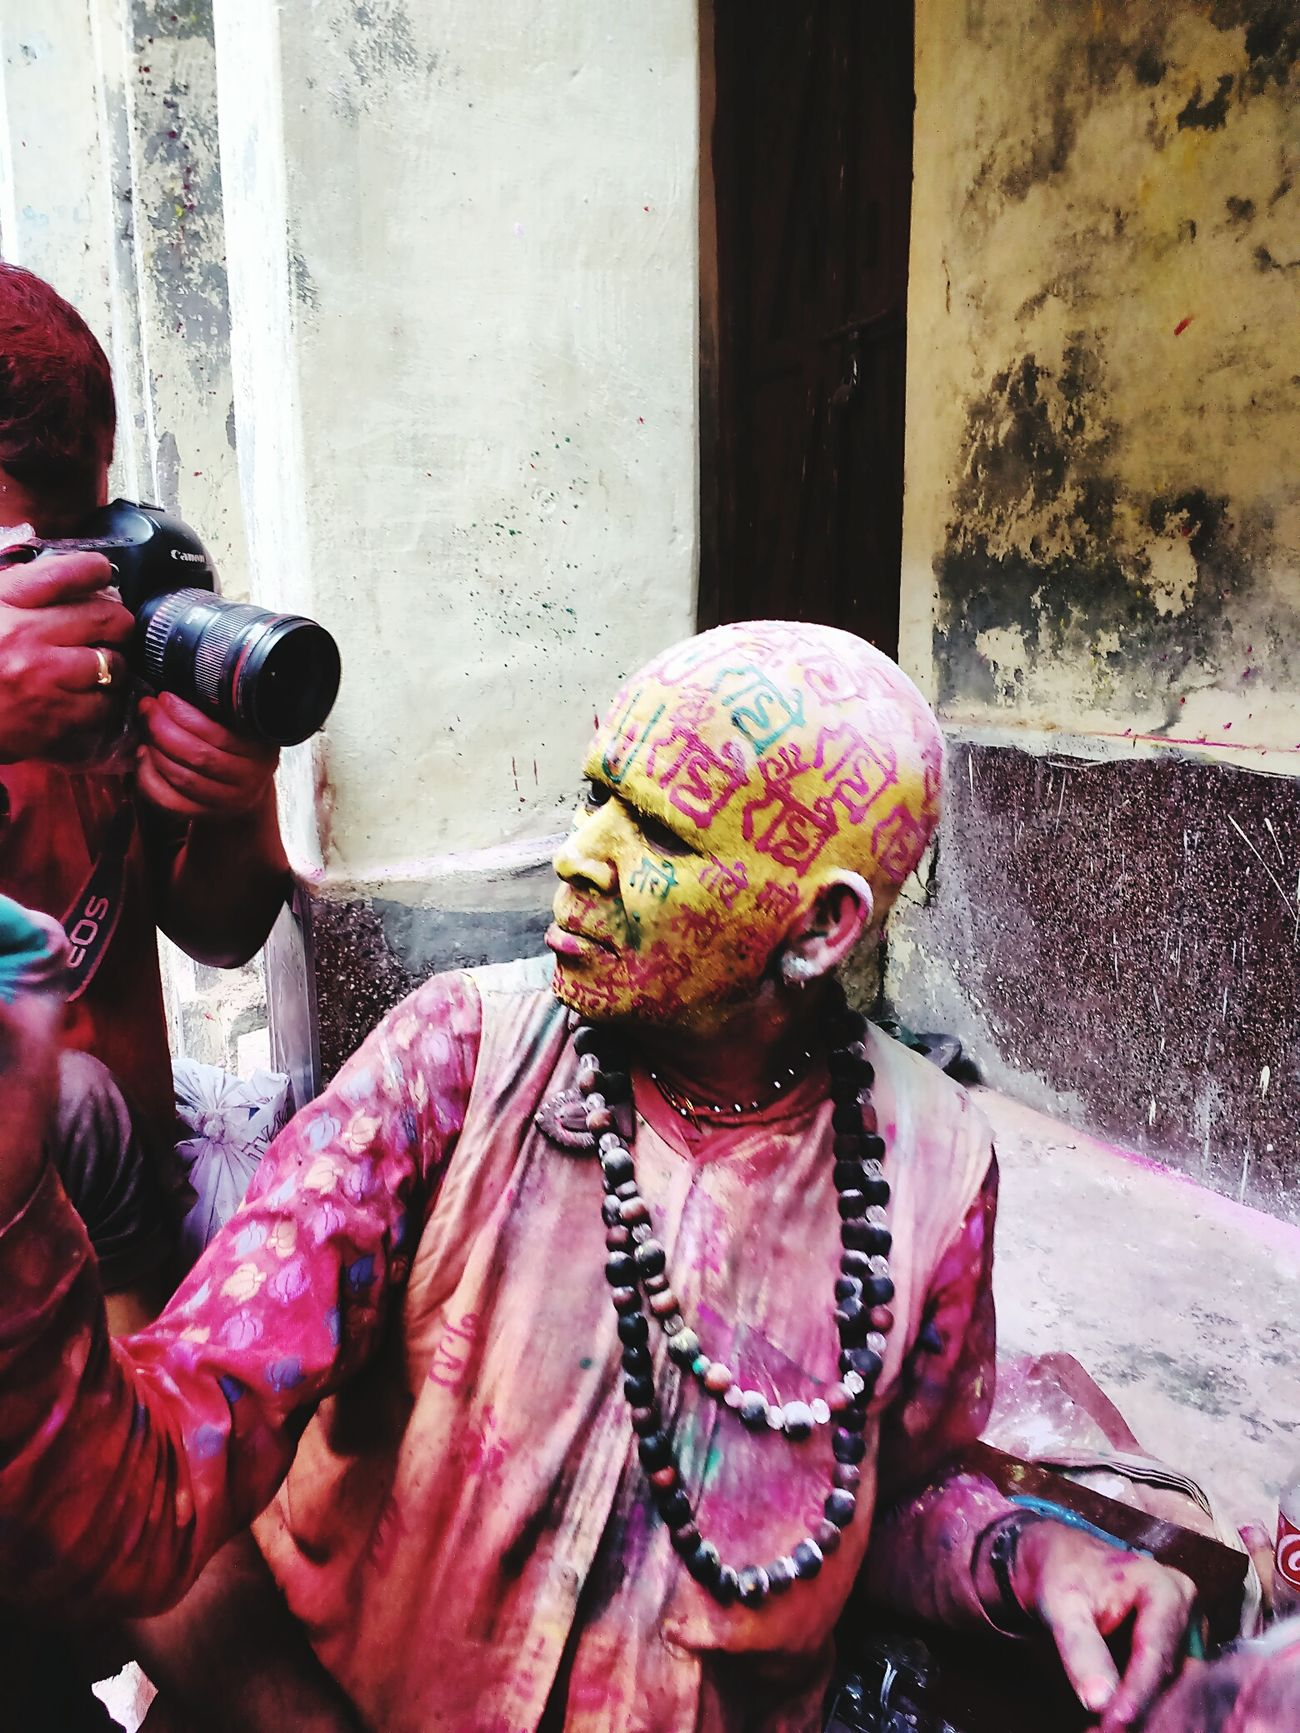 Festival of color Holi Festival lathmaar holi Barsanaholi baba writing radhe radhe on people faces Uniqueness